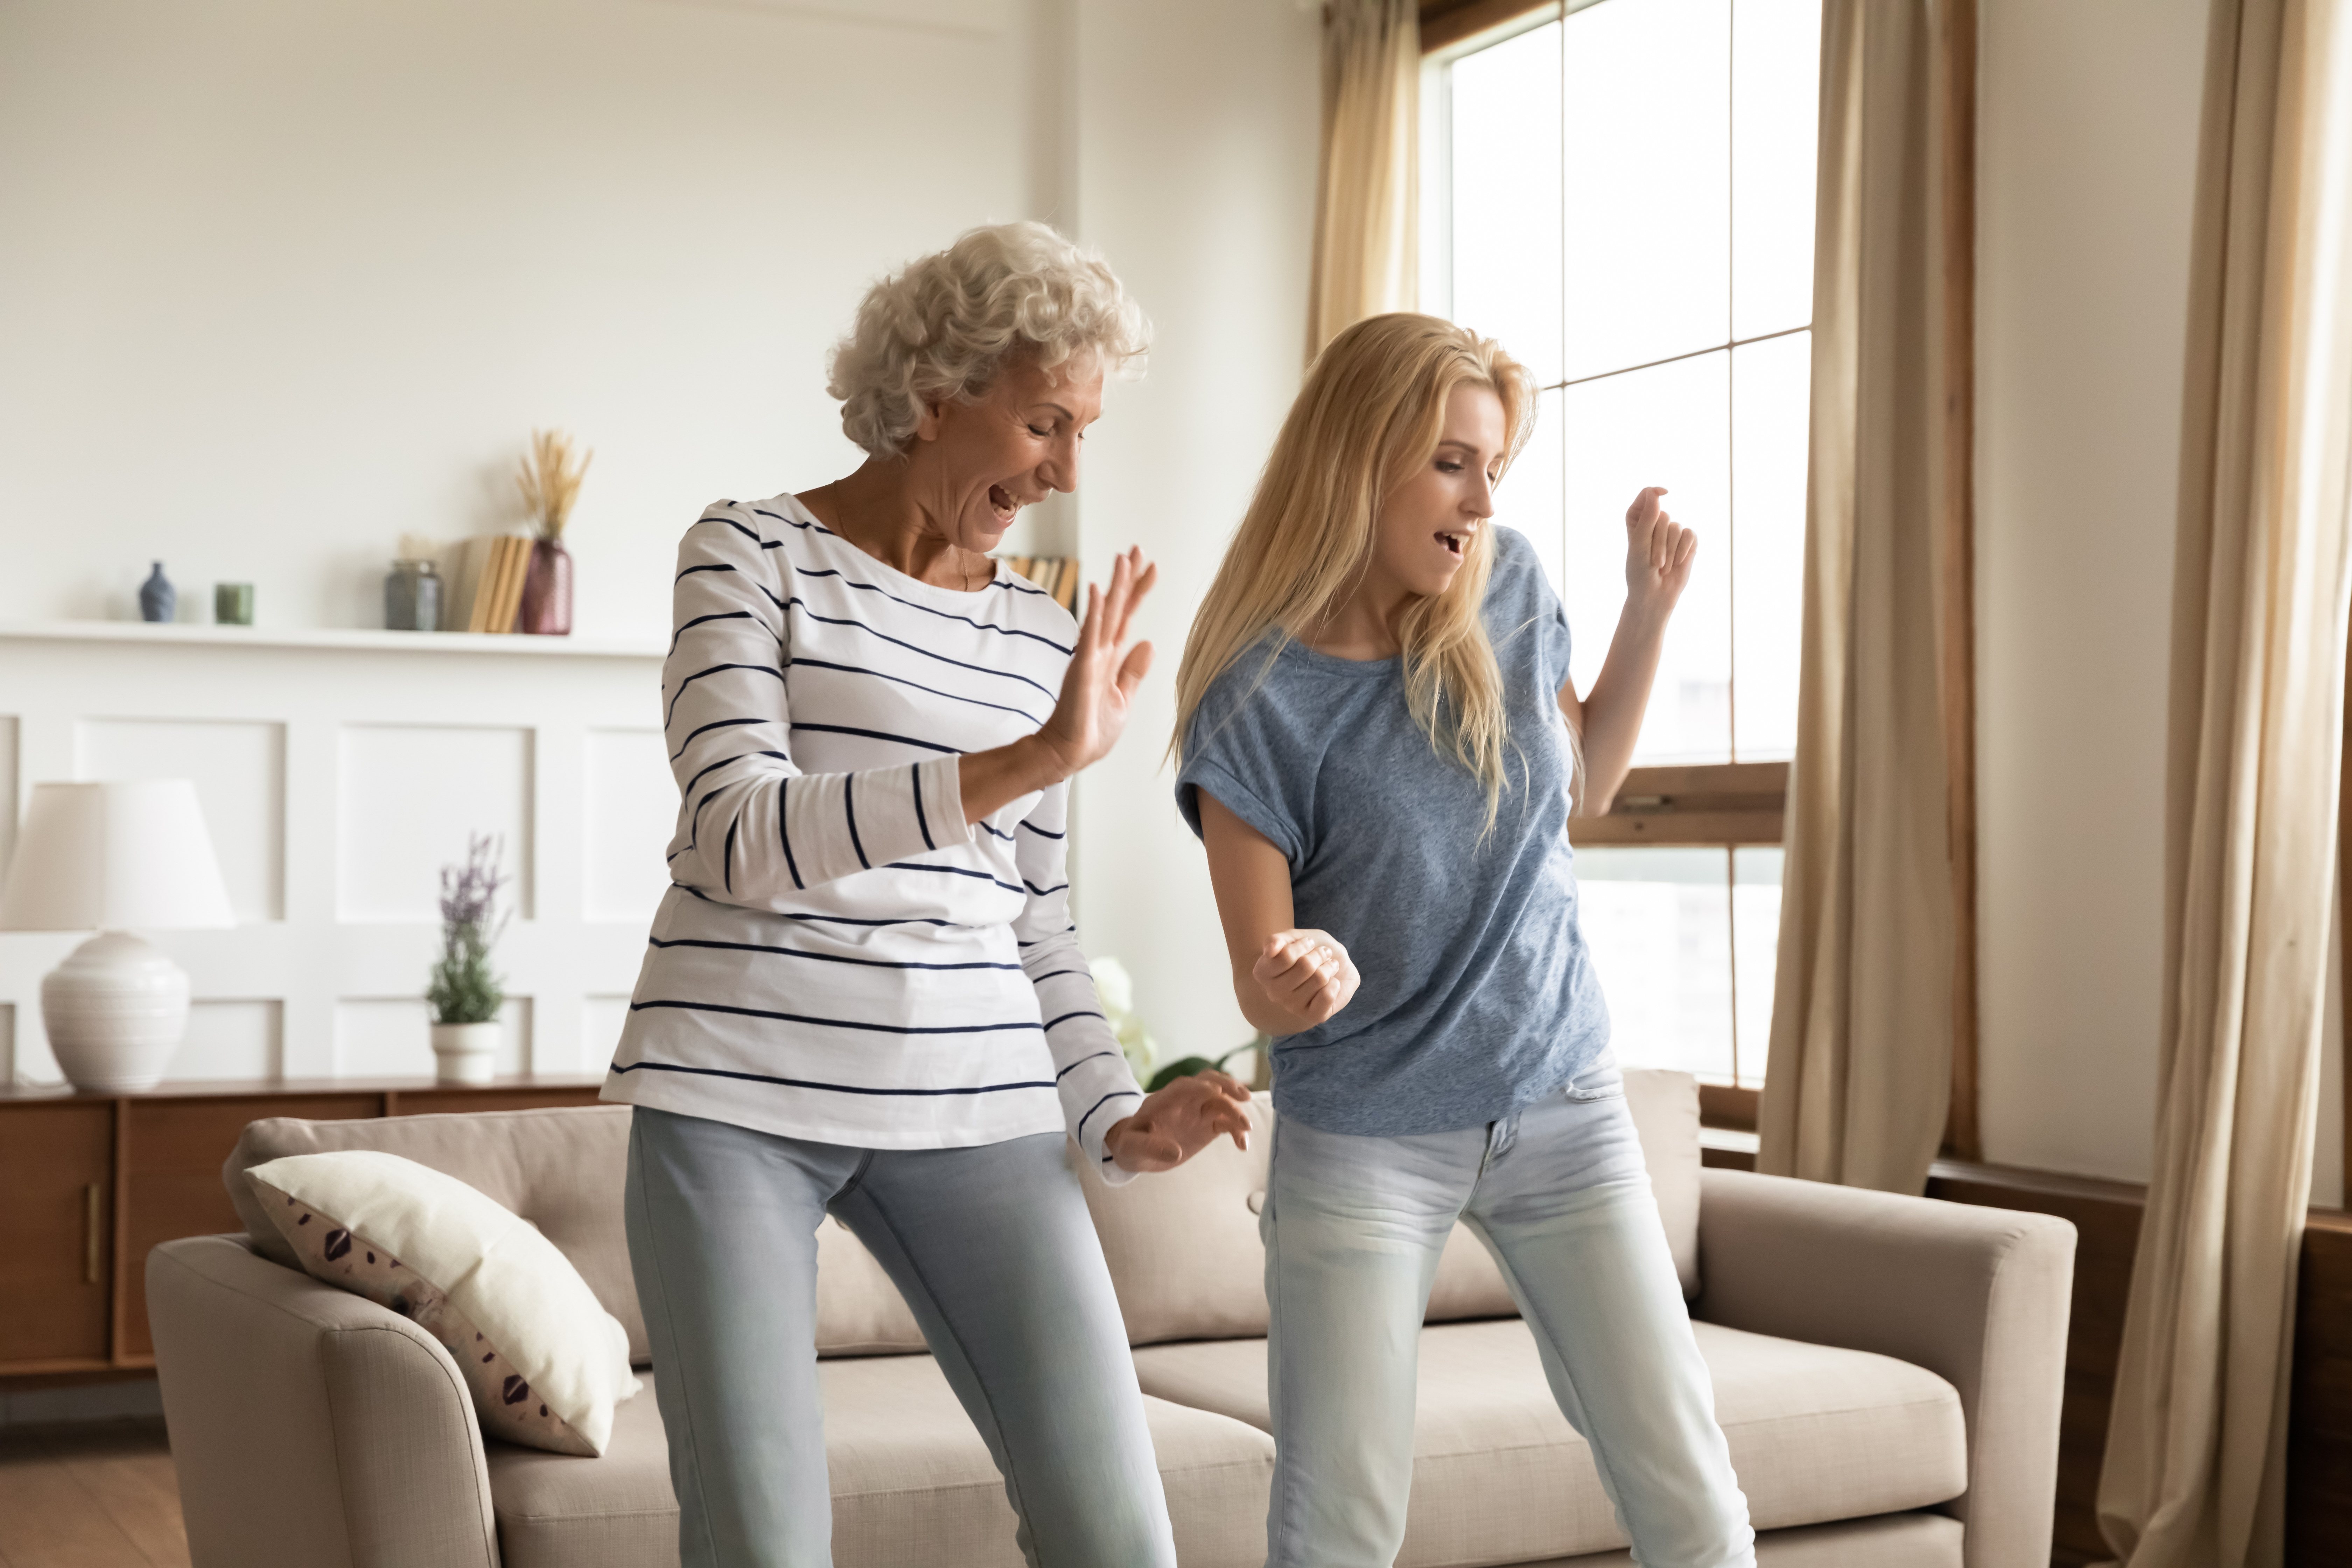 Older woman and a younger woman, happily dancing together in a living room